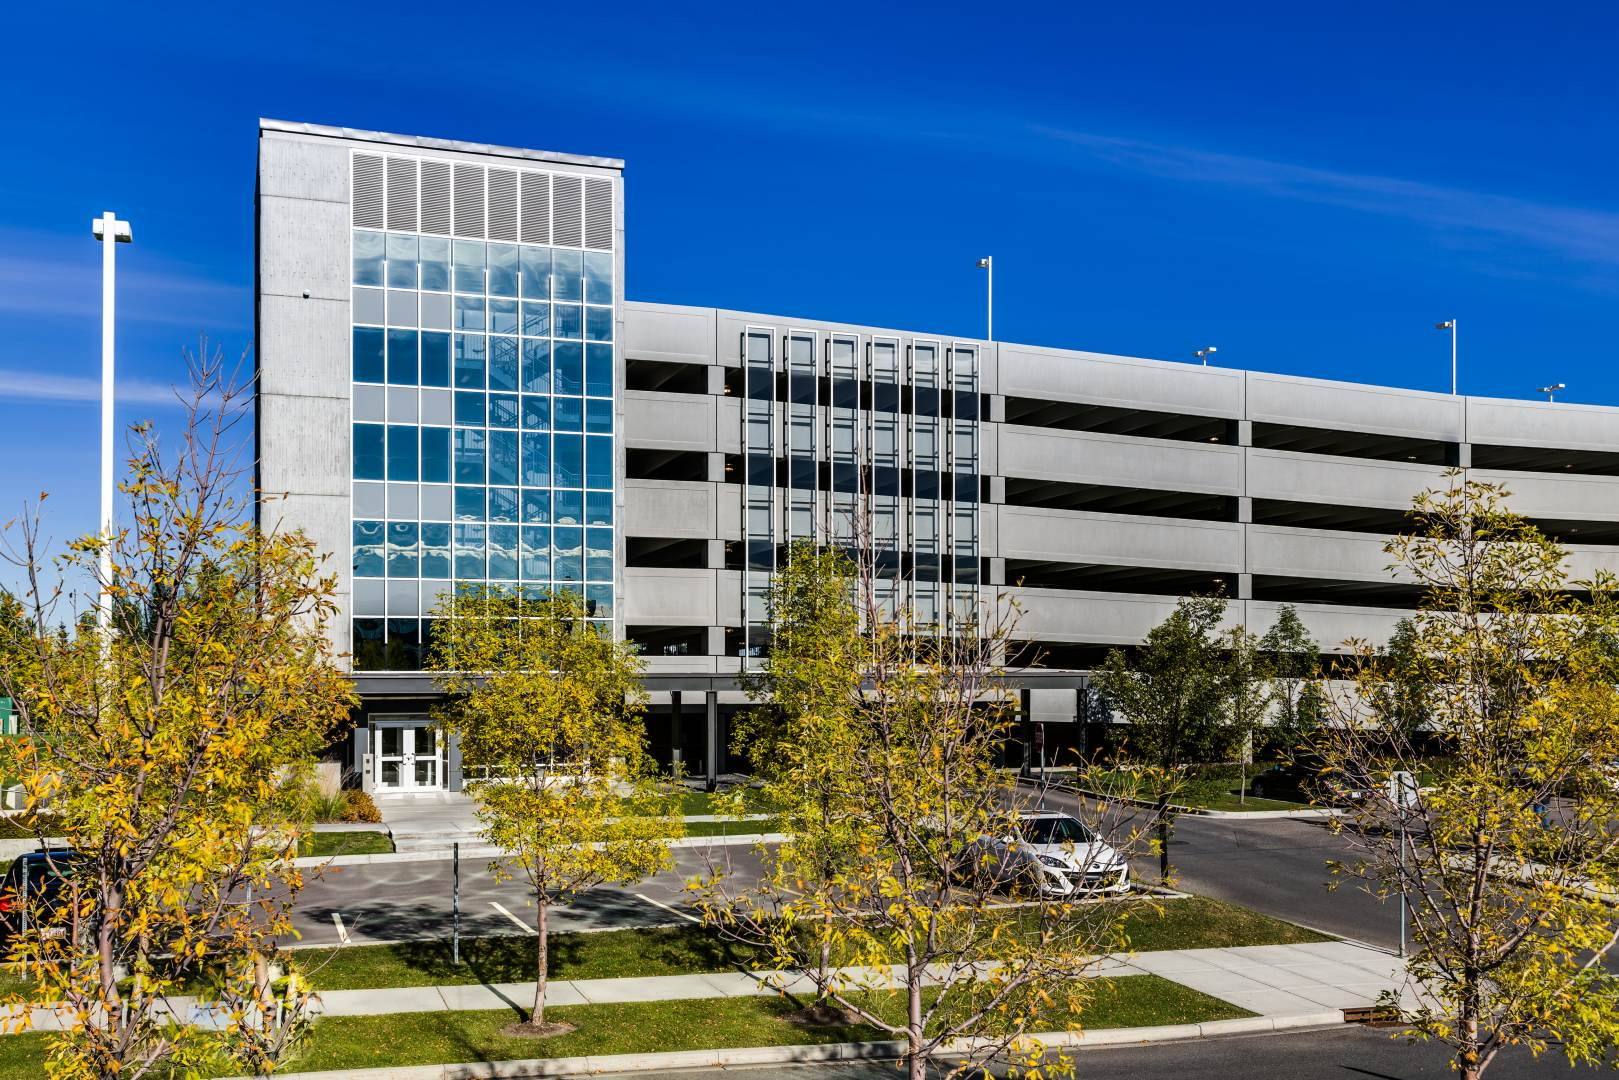 Why Choose Westmount Corporate Campus?